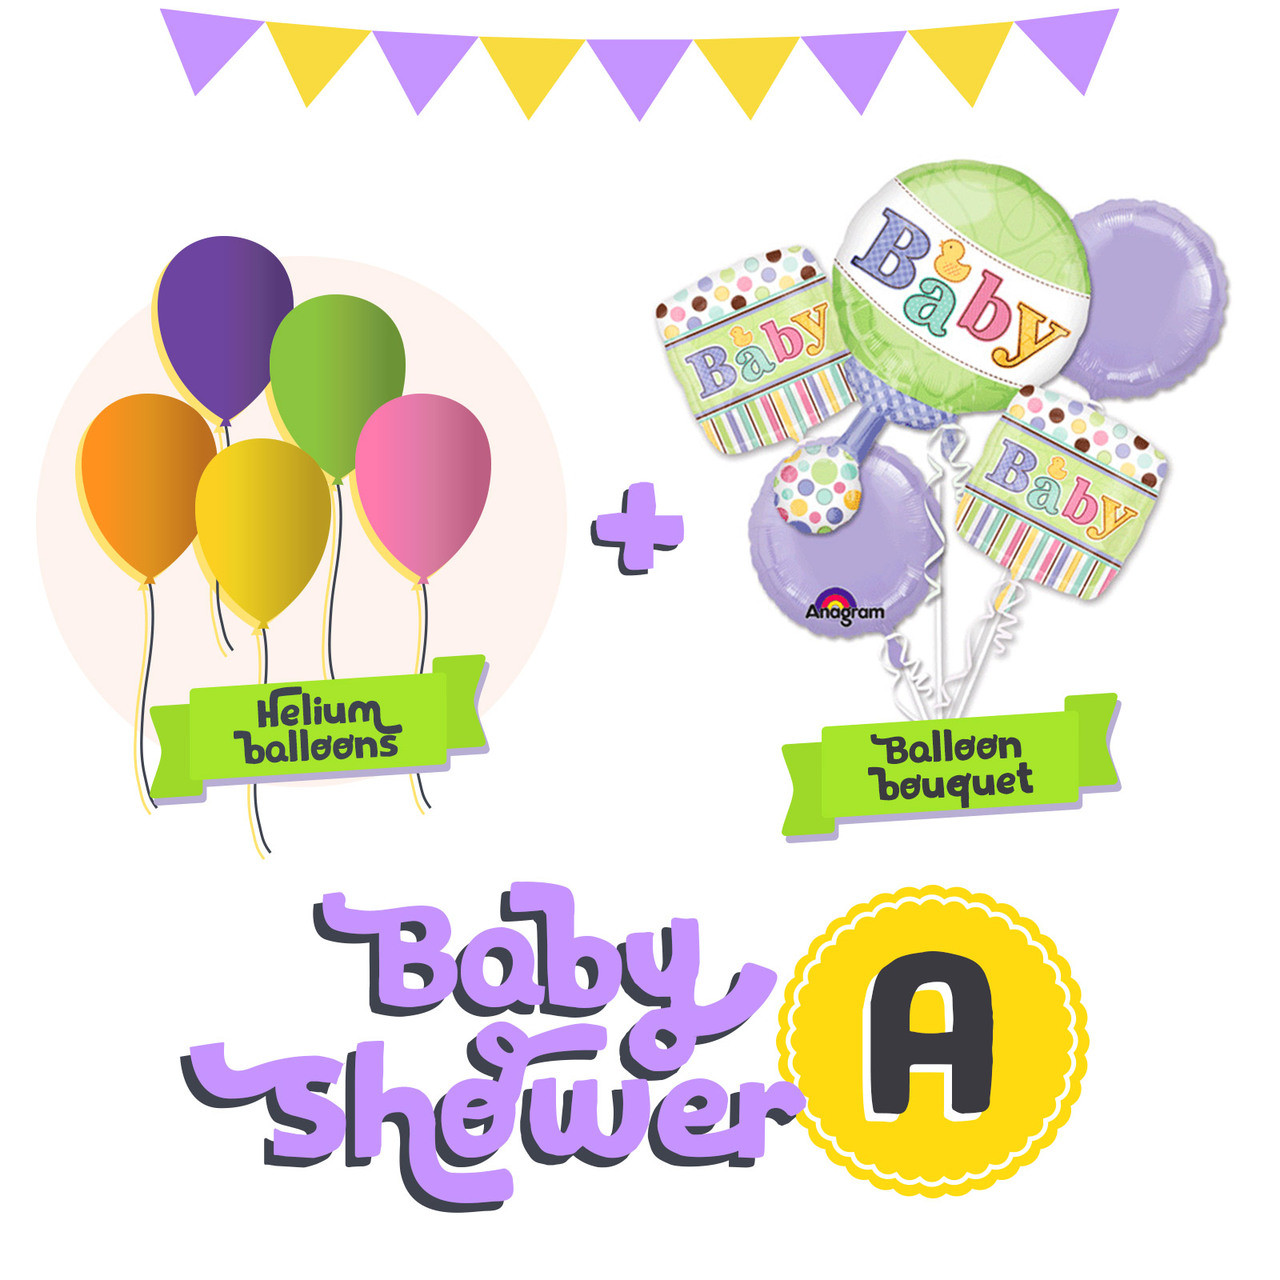 ... Baby Shower Balloon Package A. Image 1